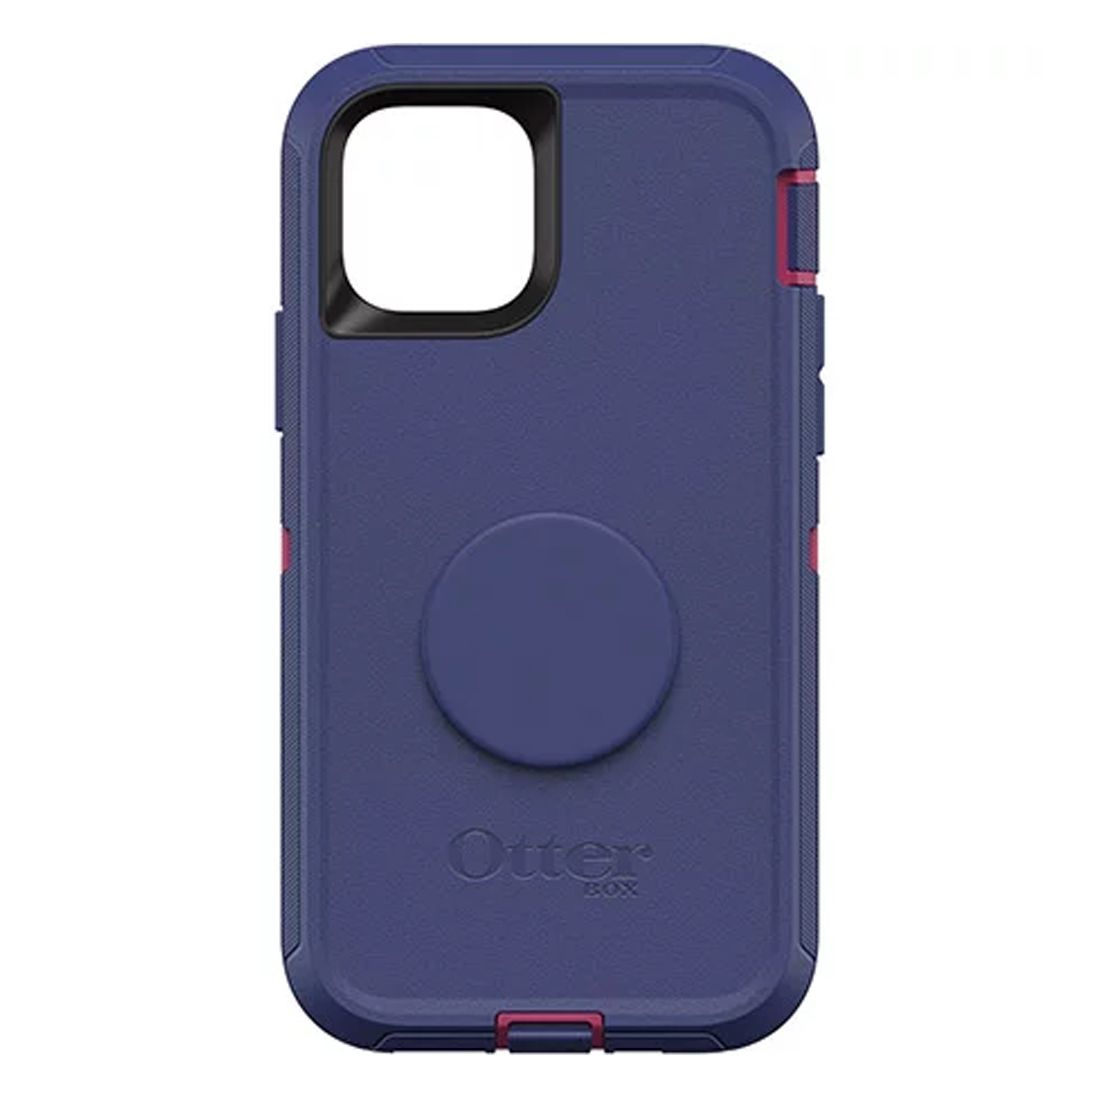 Otterbox Otter + Pop Defender Case for Apple iPhone 11 Pro - Grape Jelly Purple